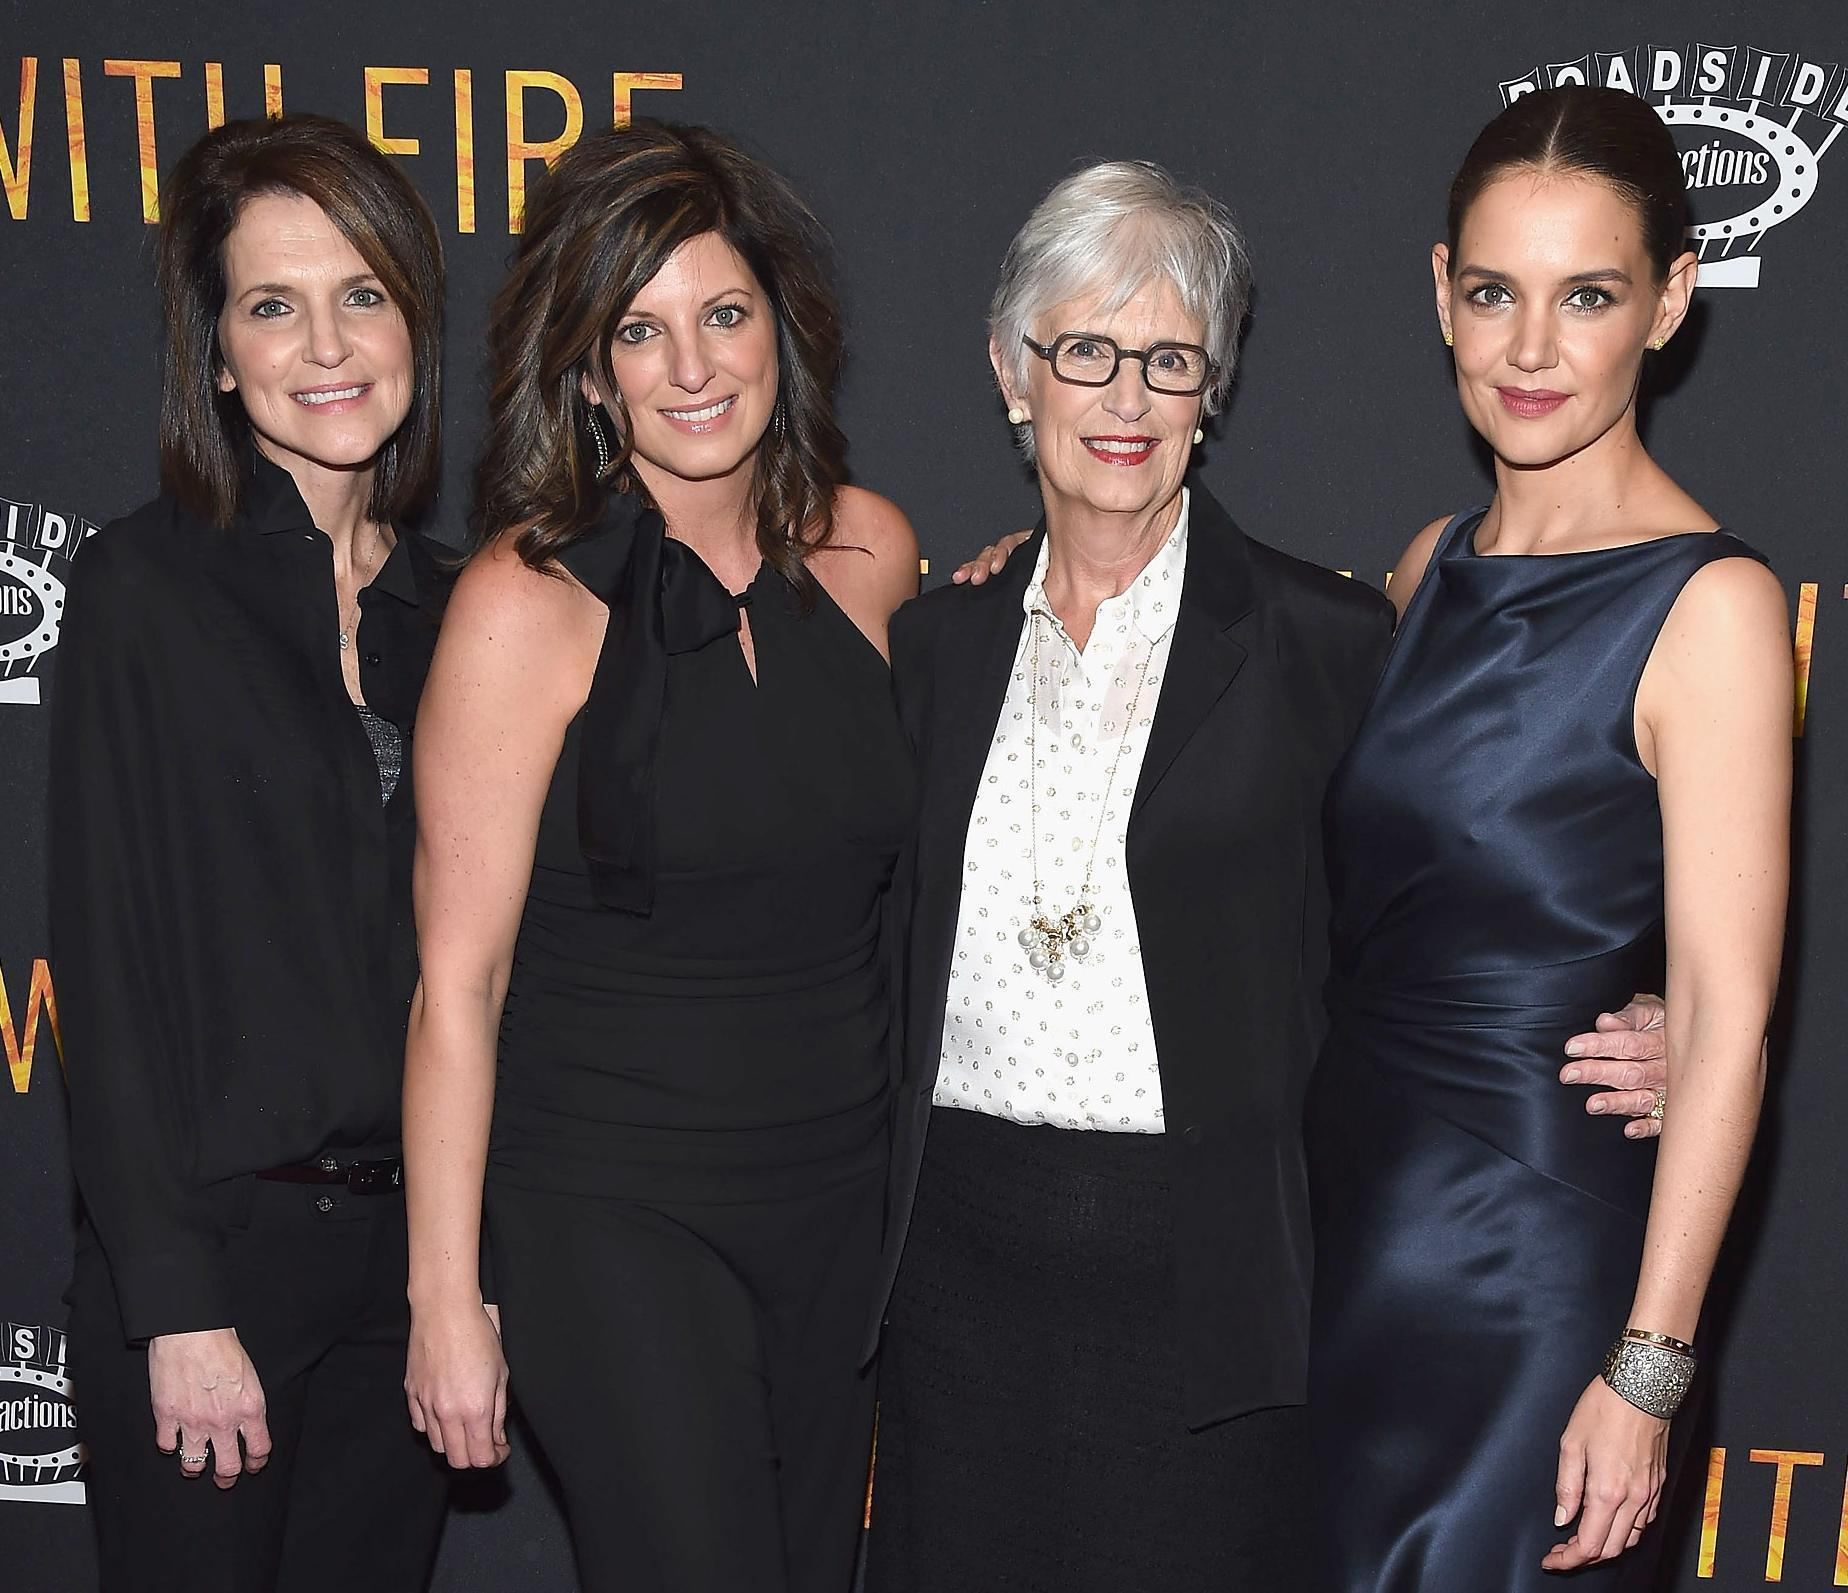 Katie Holmes Has 3 Dates for 'Touched With Fire' Premiere: Her Mom and Sisters